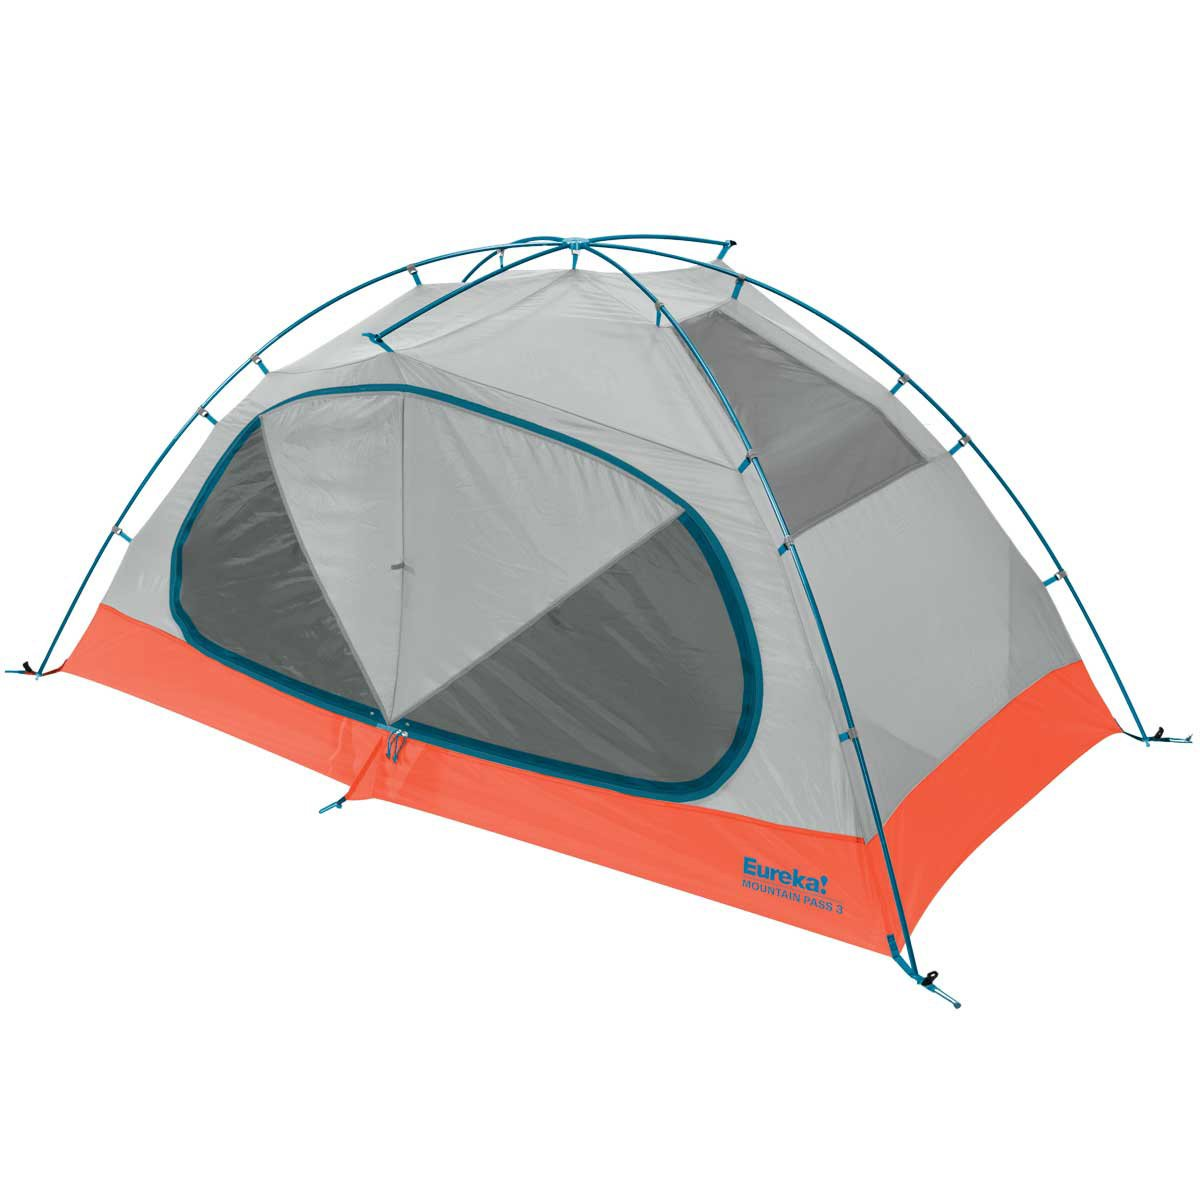 Eureka! Mountain Pass Four-Season Backpacking Tent